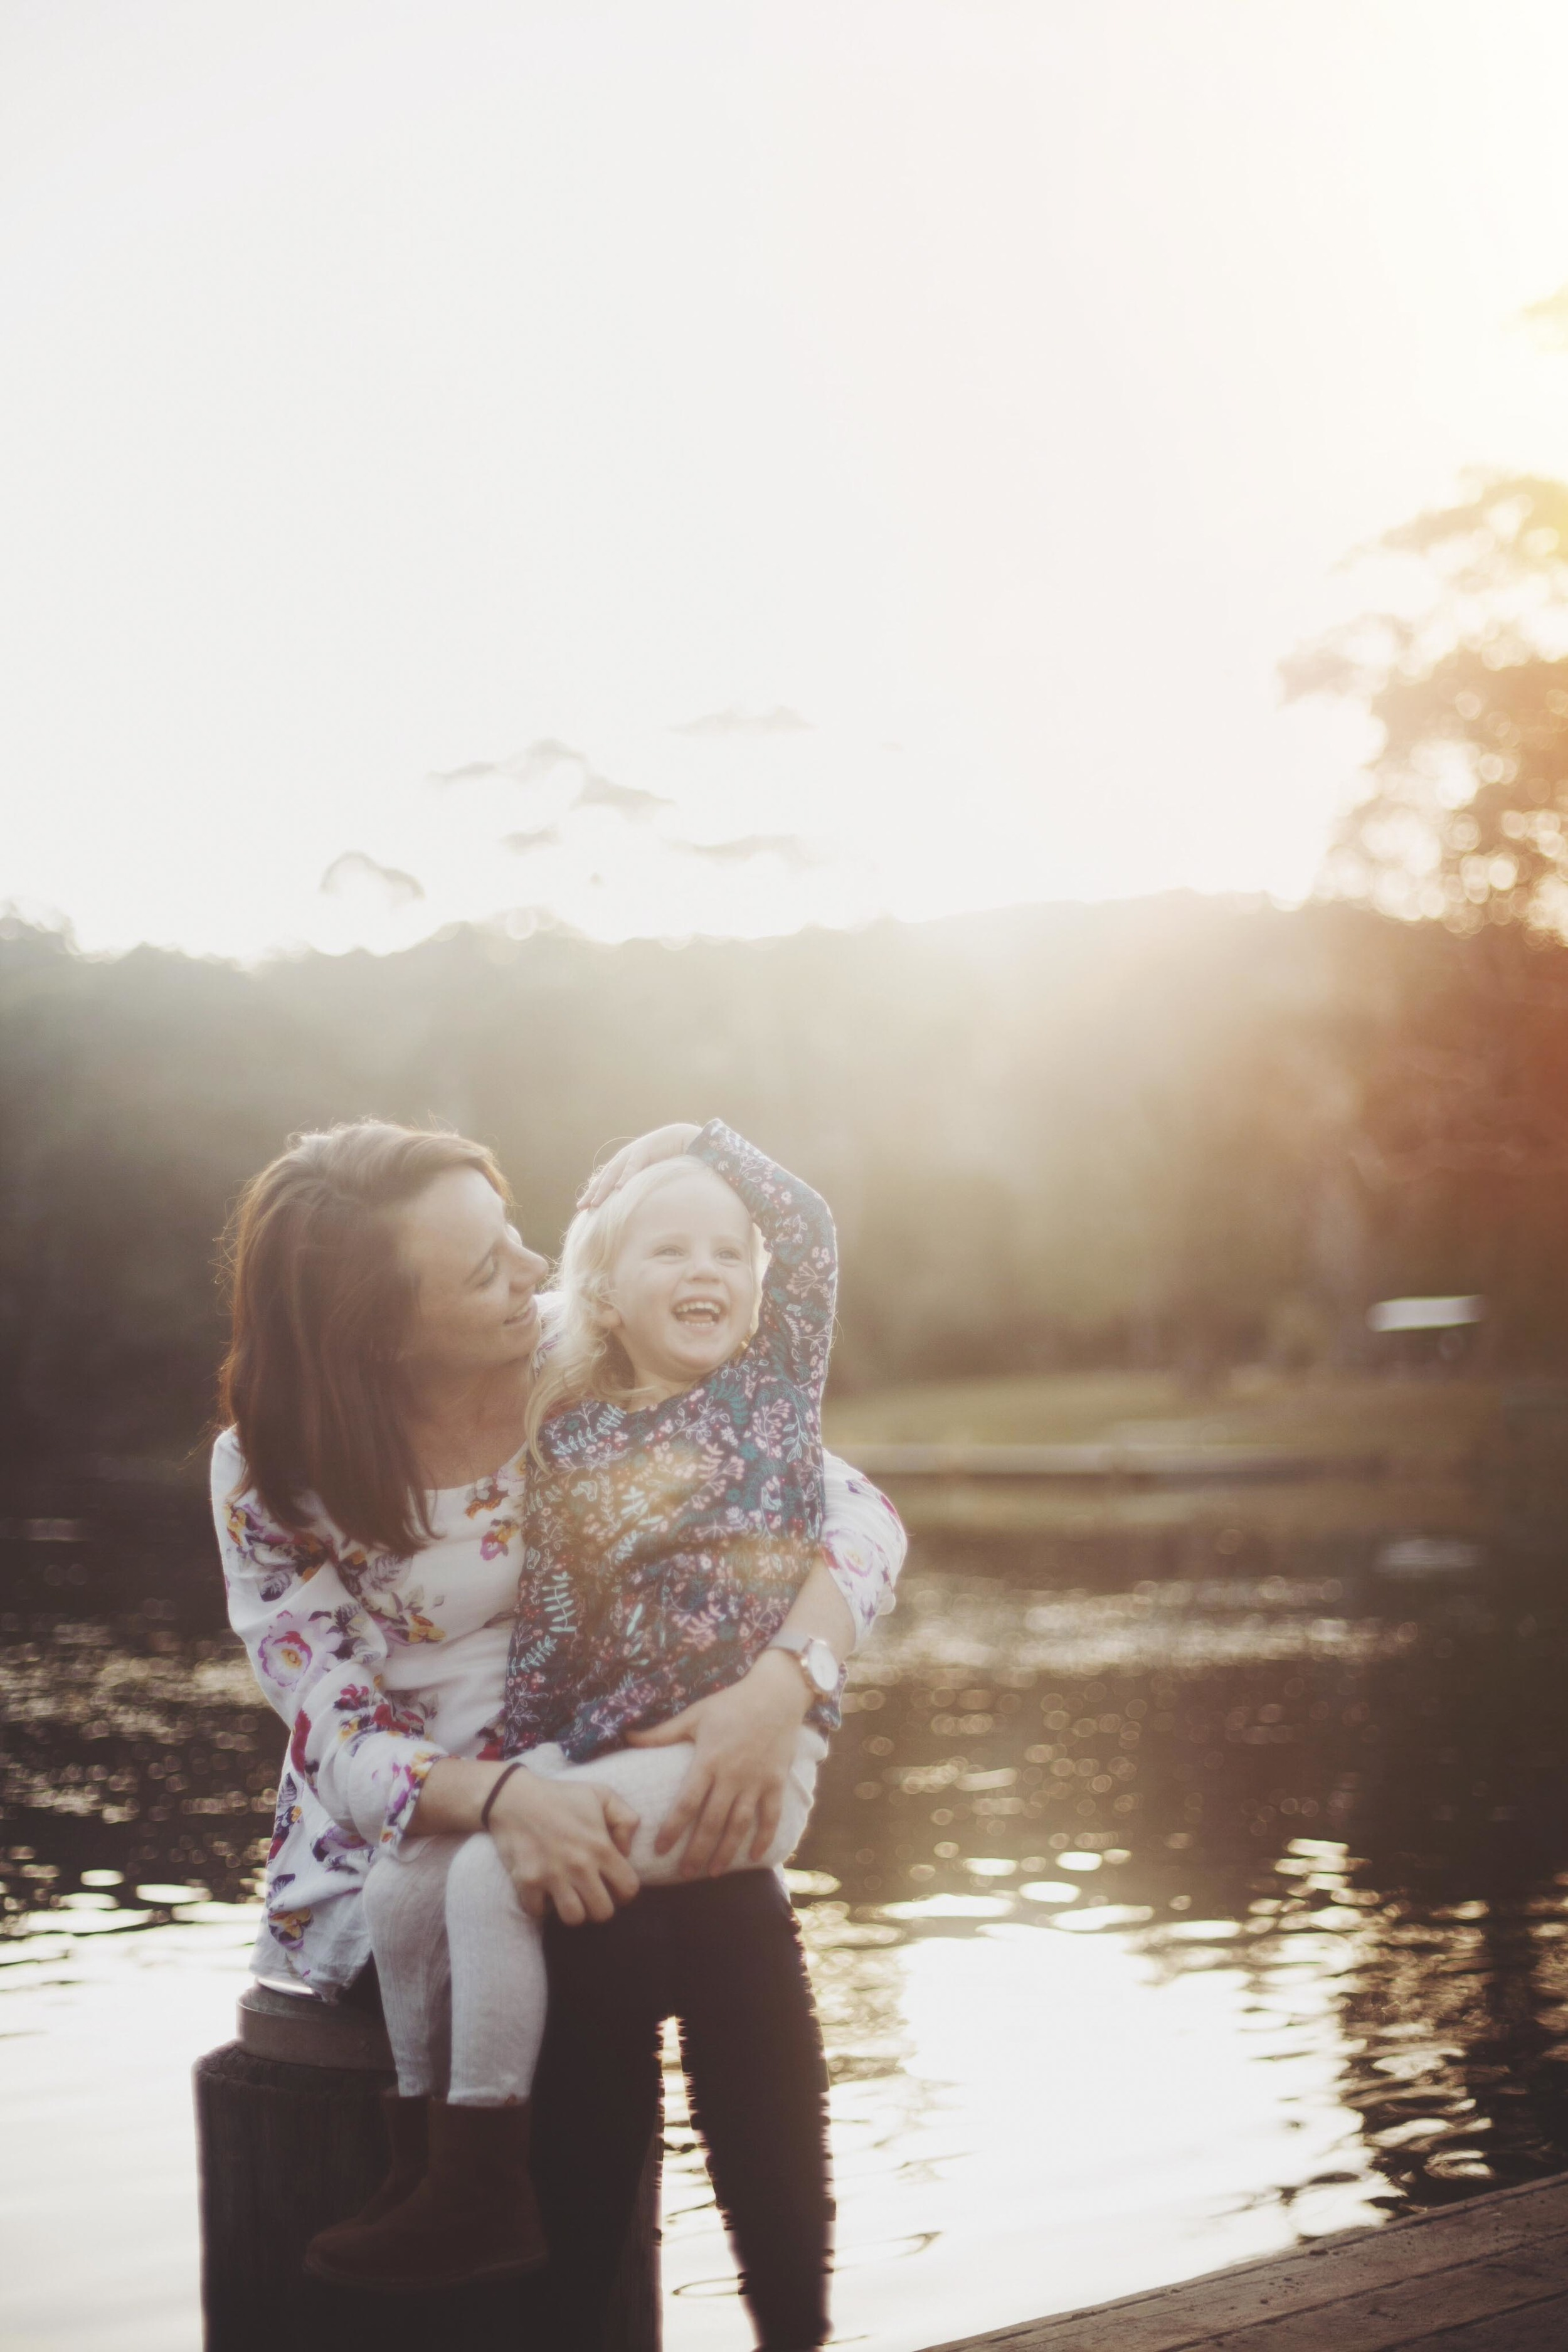 mother and daughter laughing together at sunset by the water